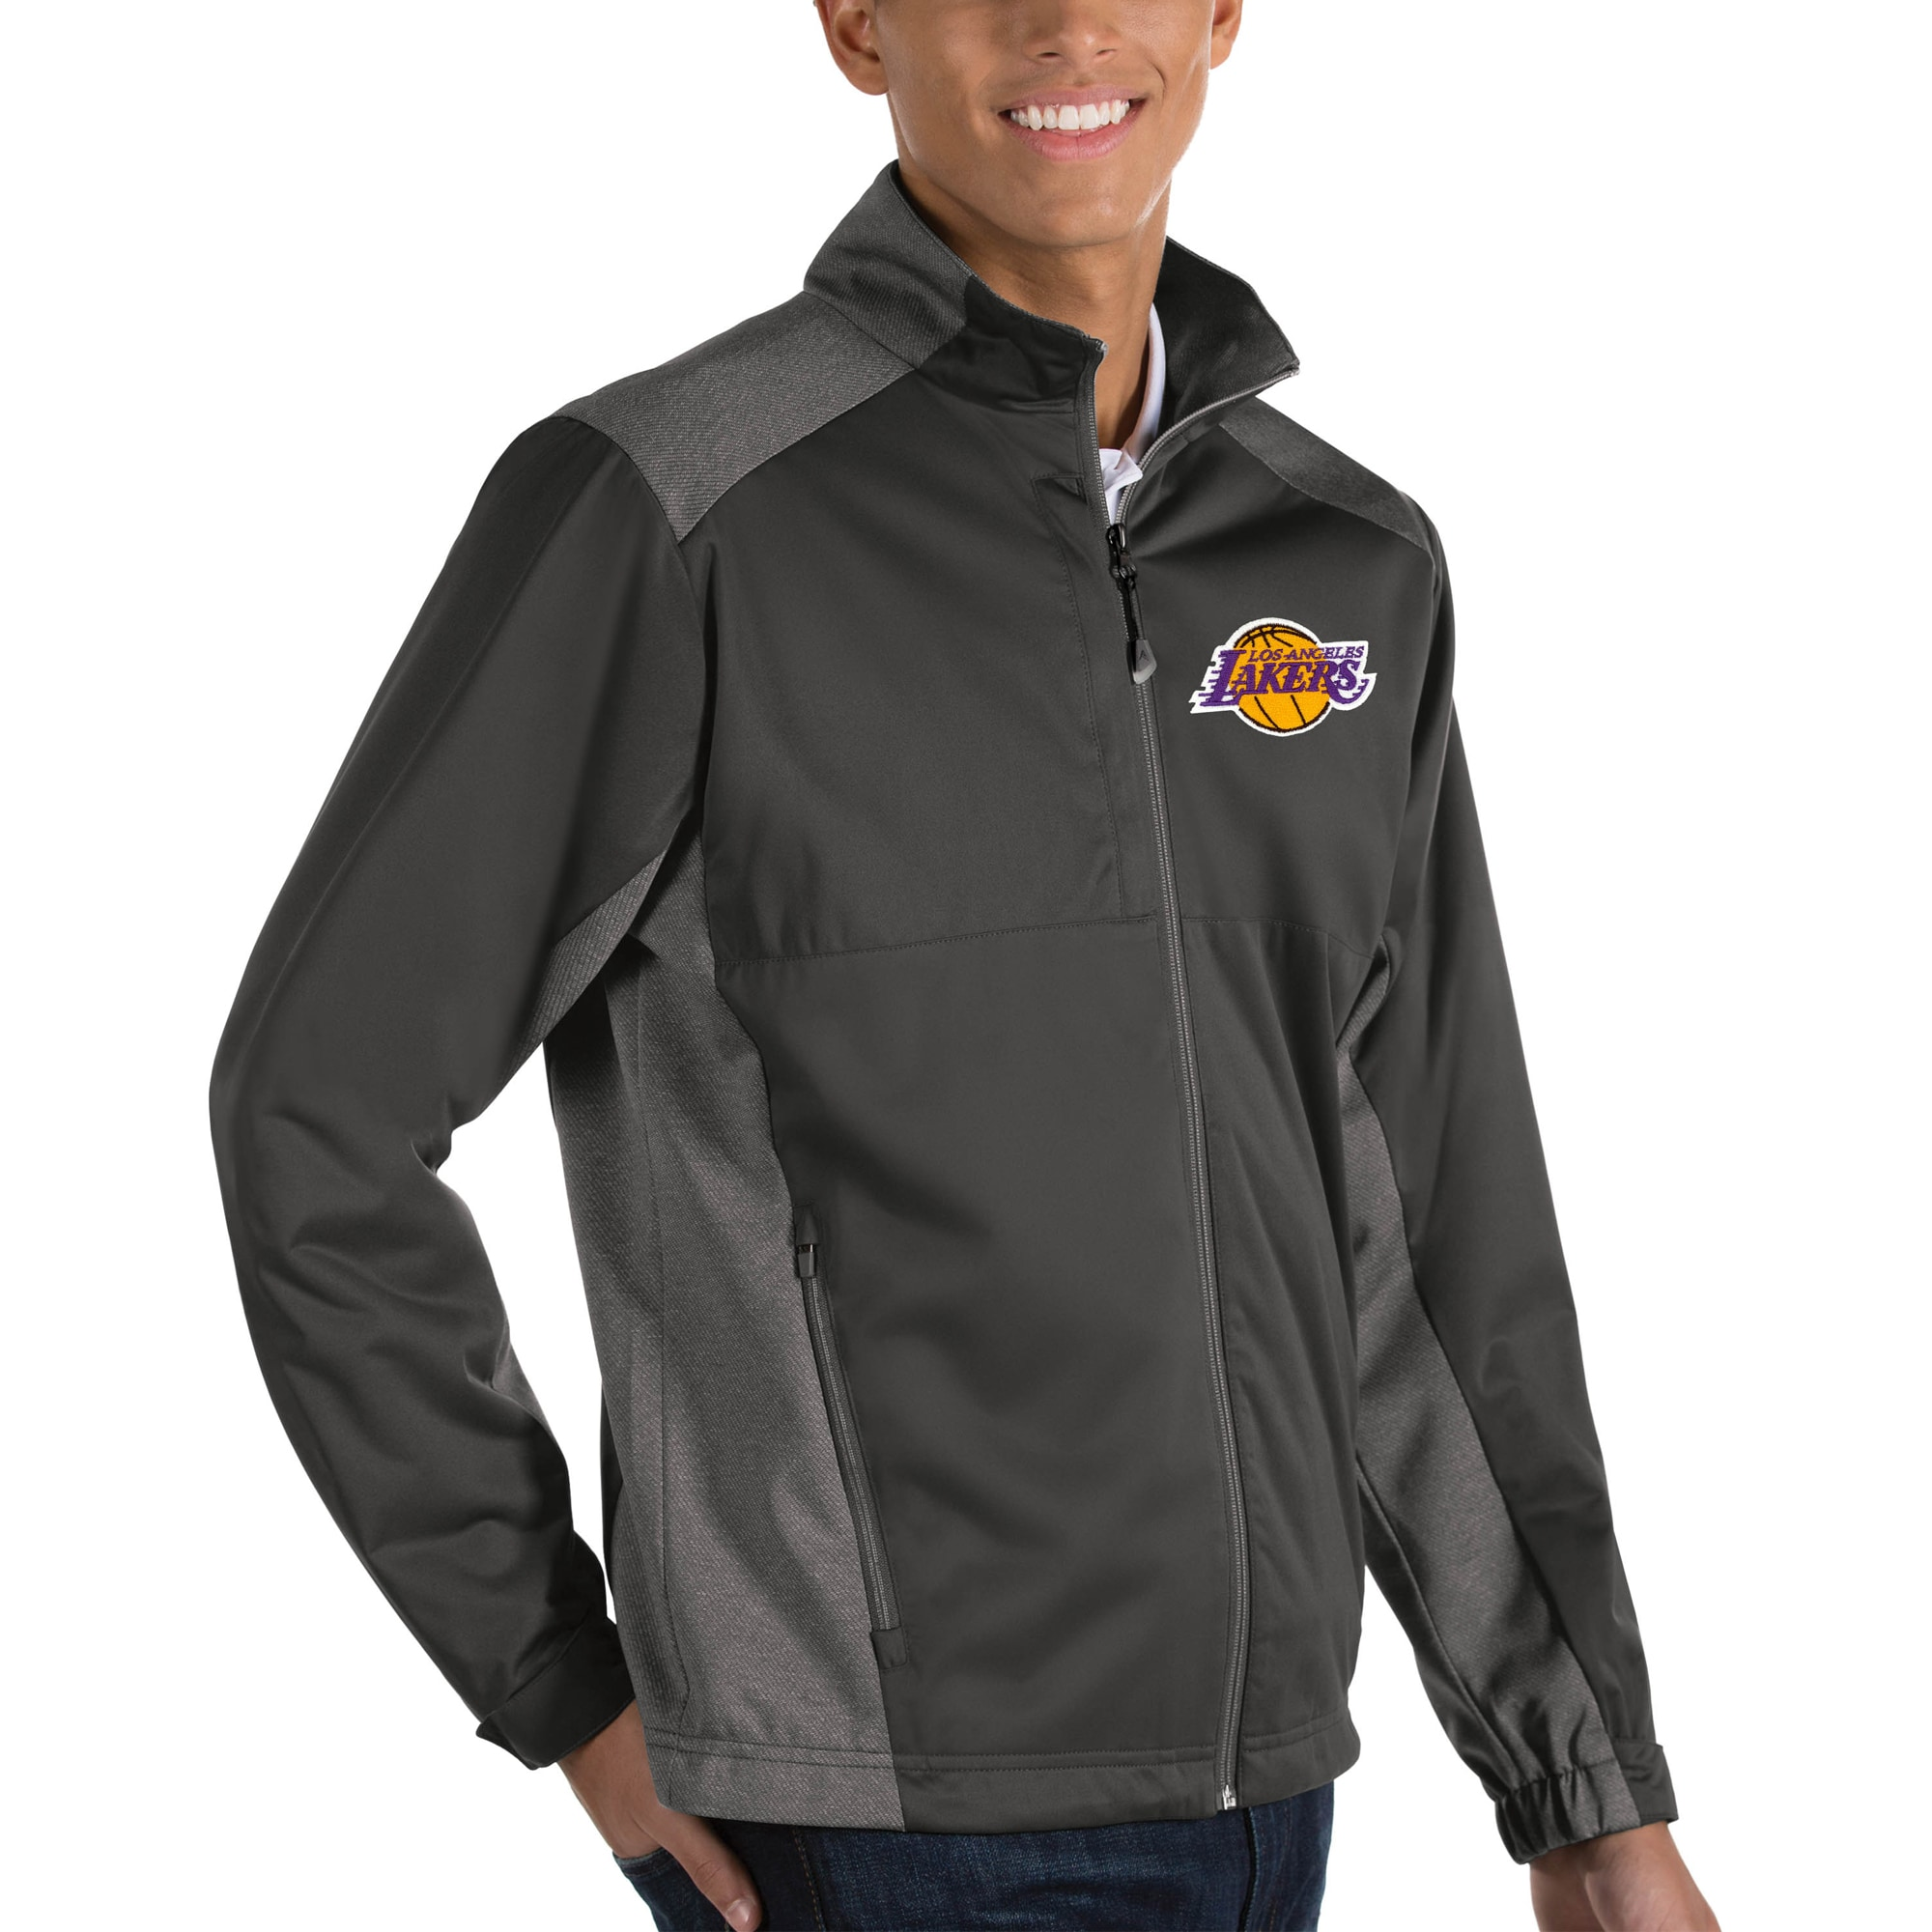 Los Angeles Lakers Antigua Revolve Big & Tall Full-Zip Jacket - Charcoal